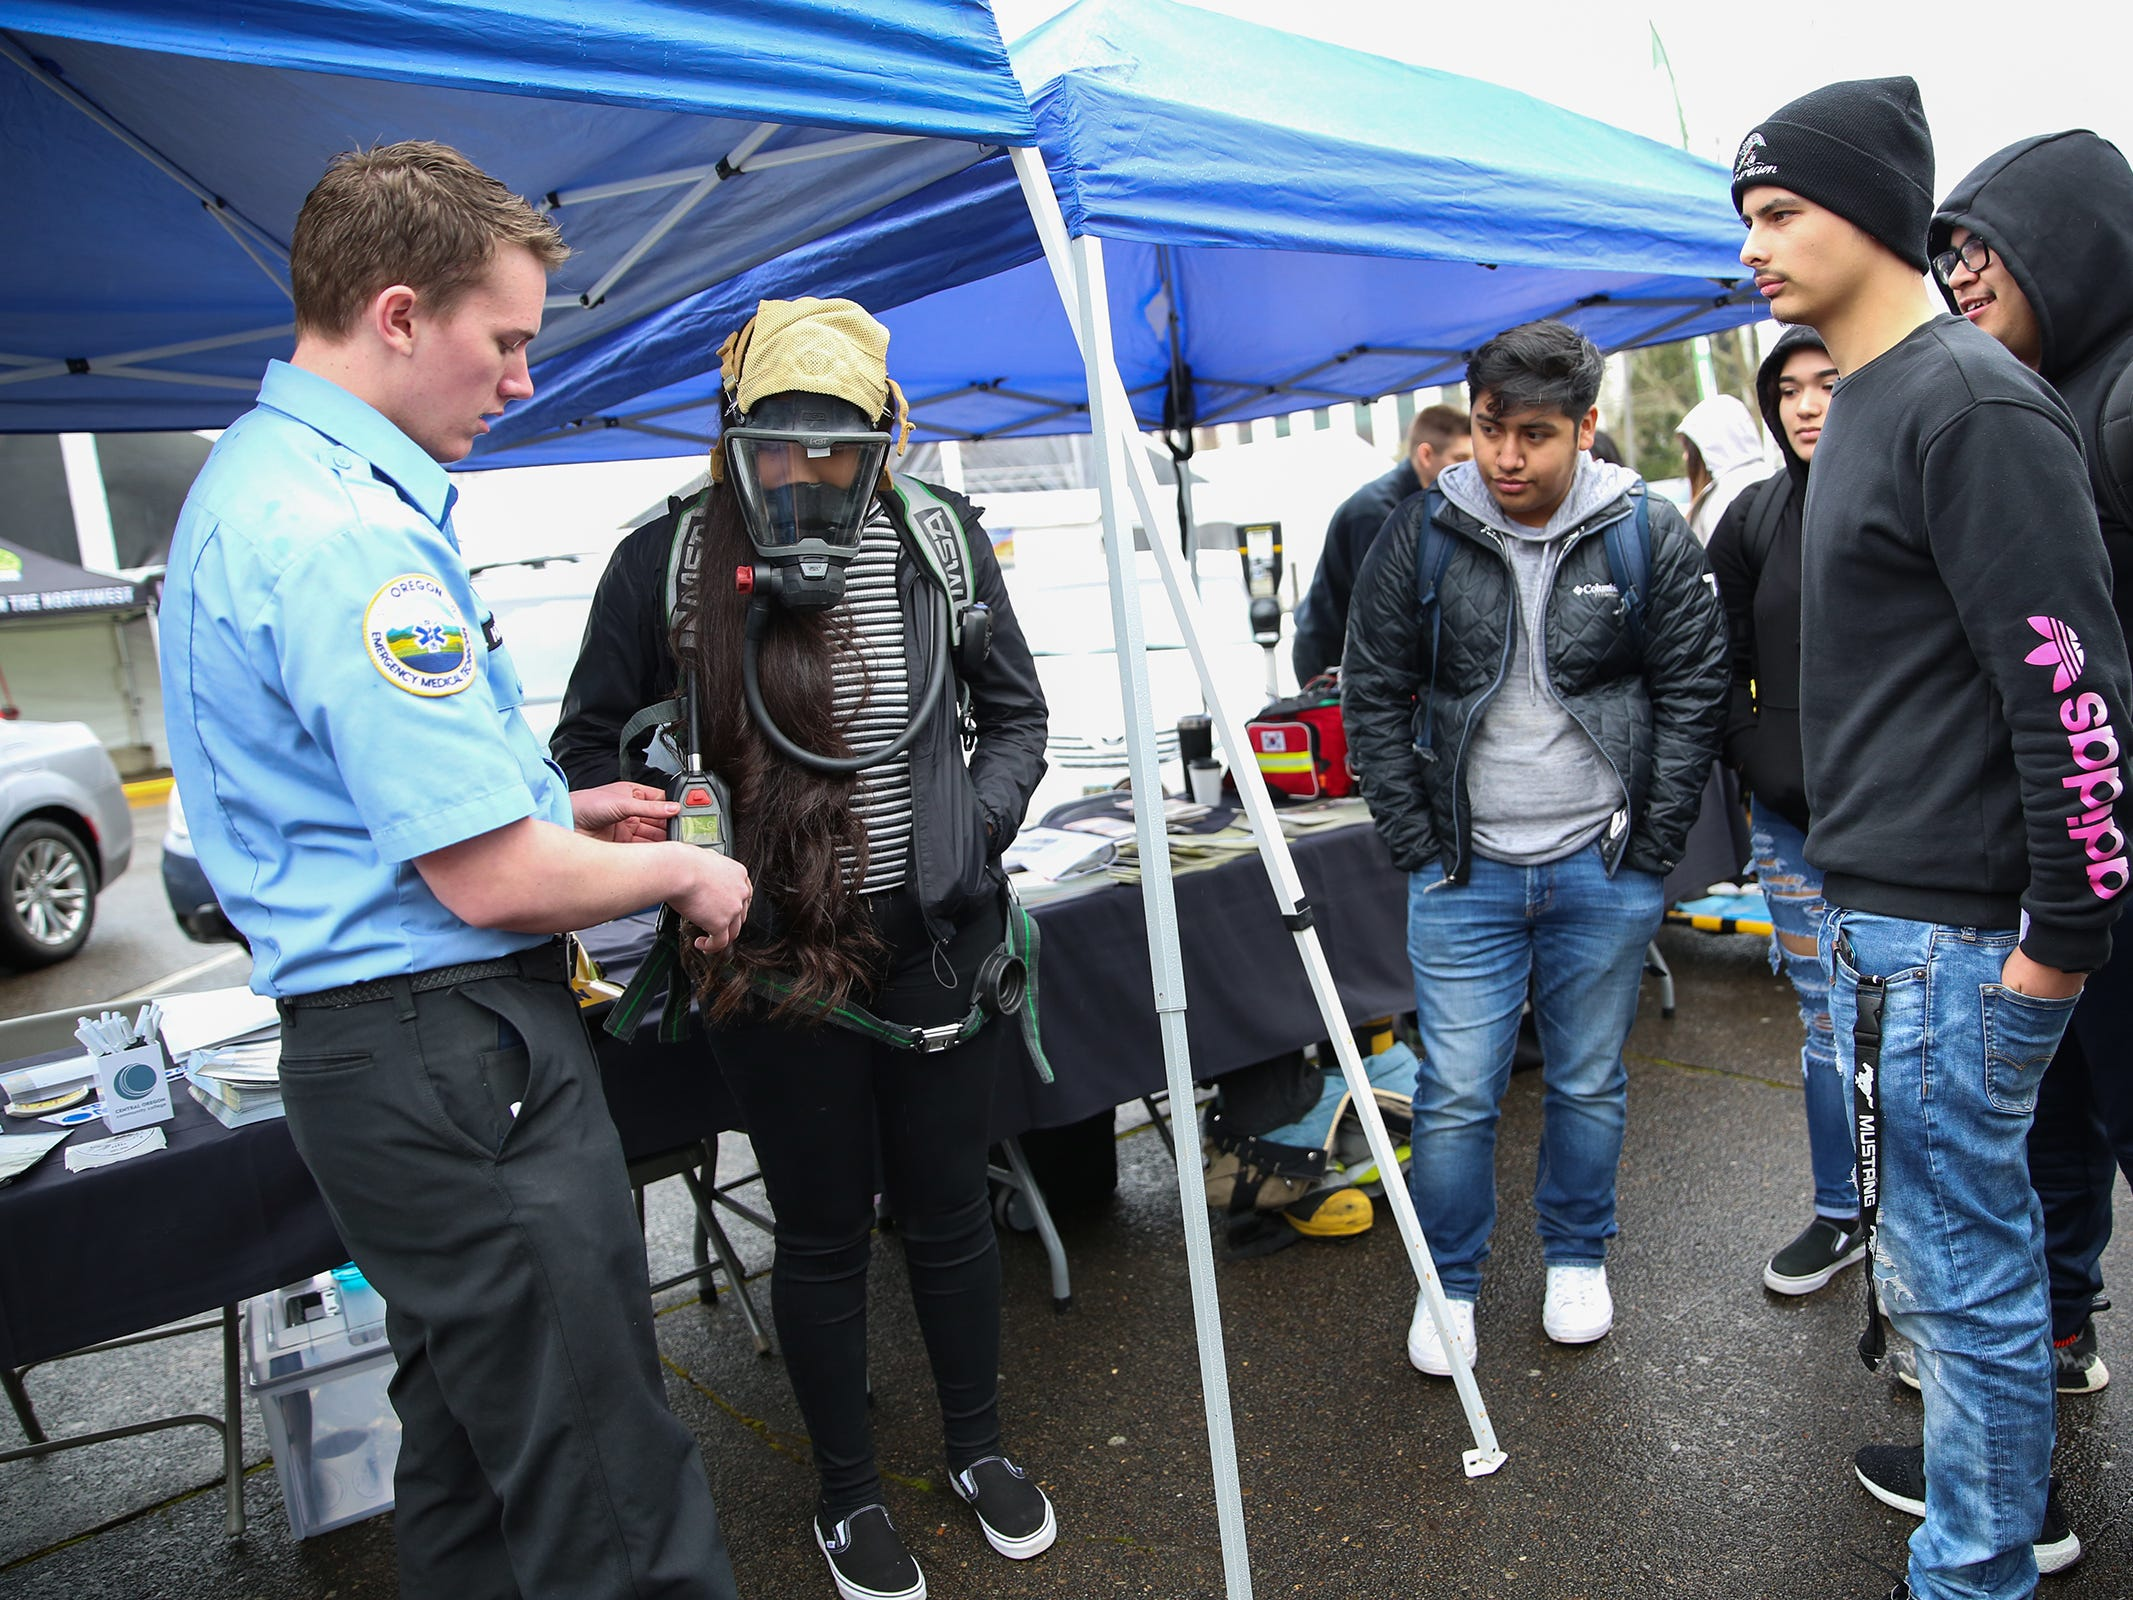 Riley Holmes , a paramedic student at Chemeketa community college (far left) demonstrates how to use a mask in an emergency during Career and Technical Education (CTE) day at the Oregon State Capitol in Salem on Friday, Feb. 1, 2019.